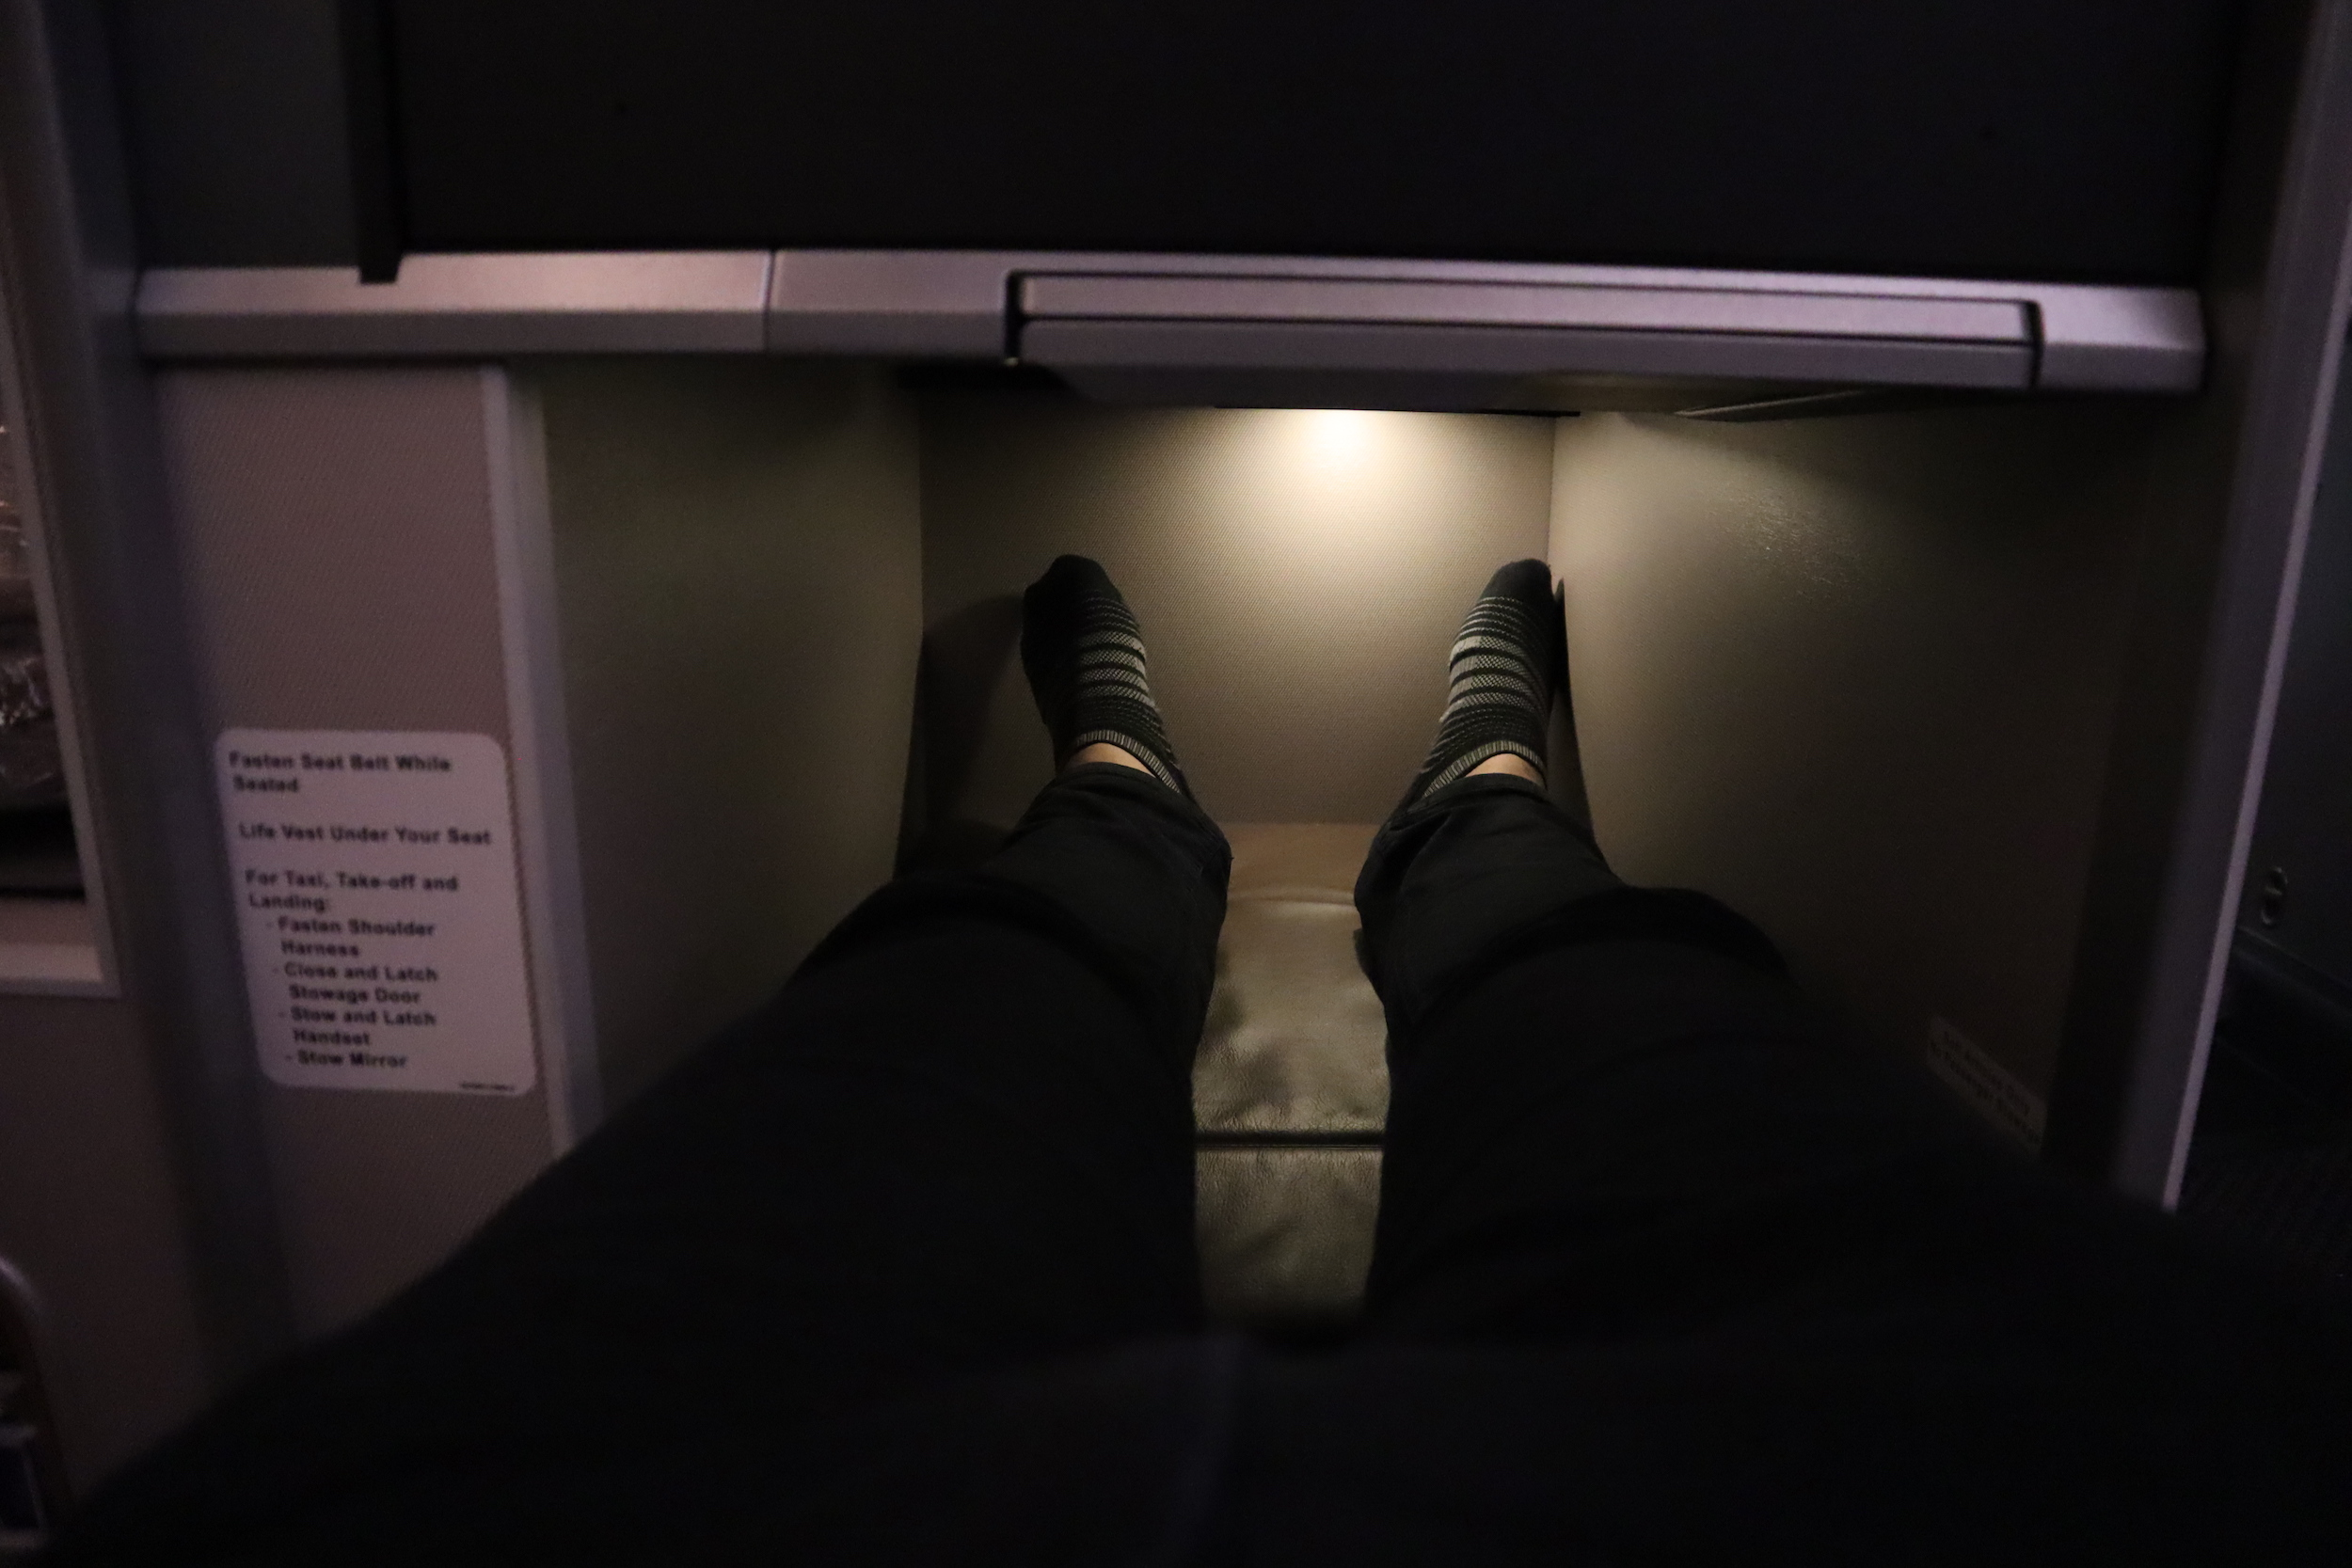 Singapore Airlines 787-10 business class – Legroom